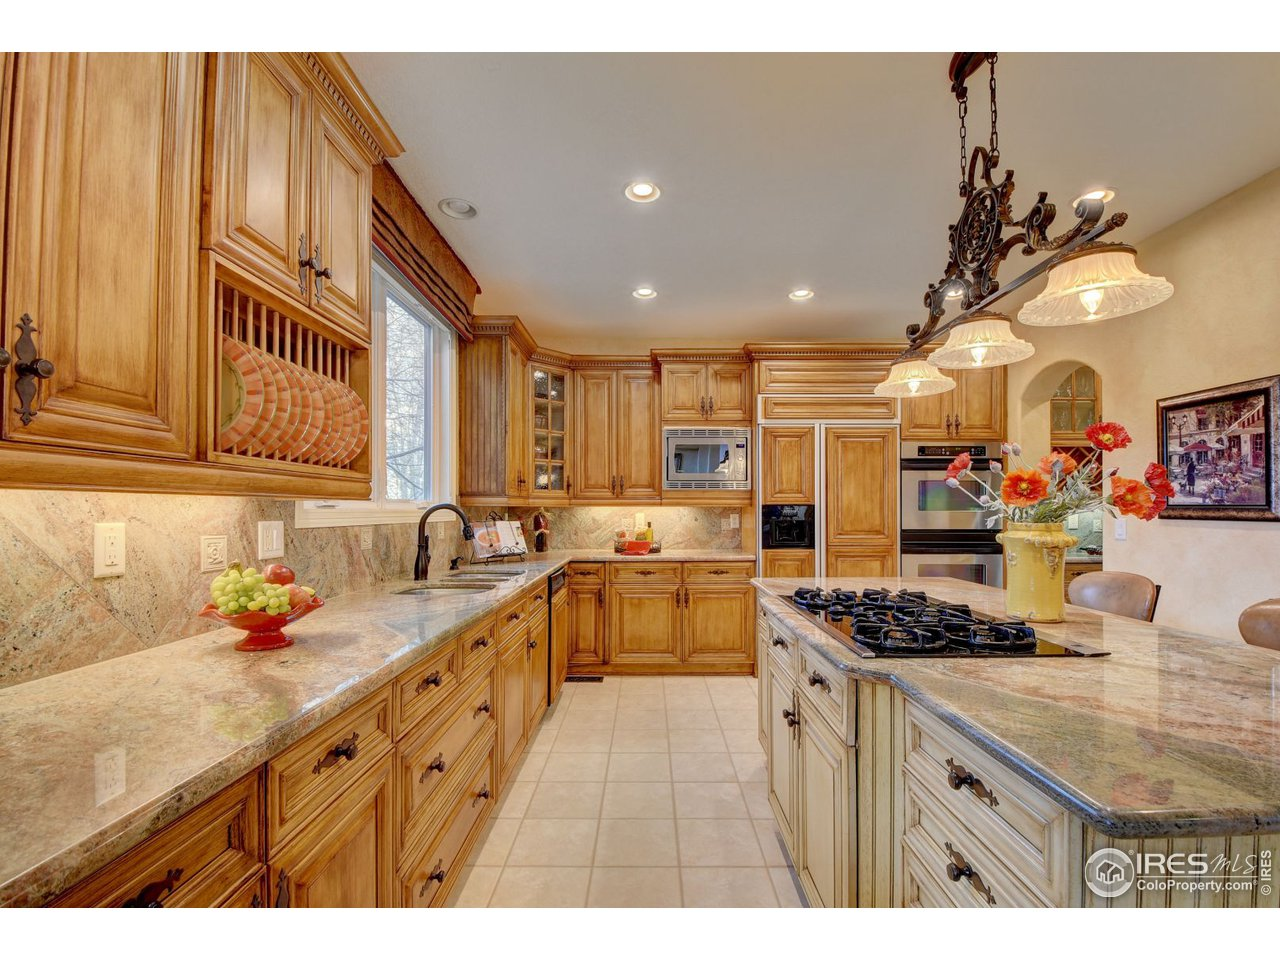 Granite counters and loads of storage